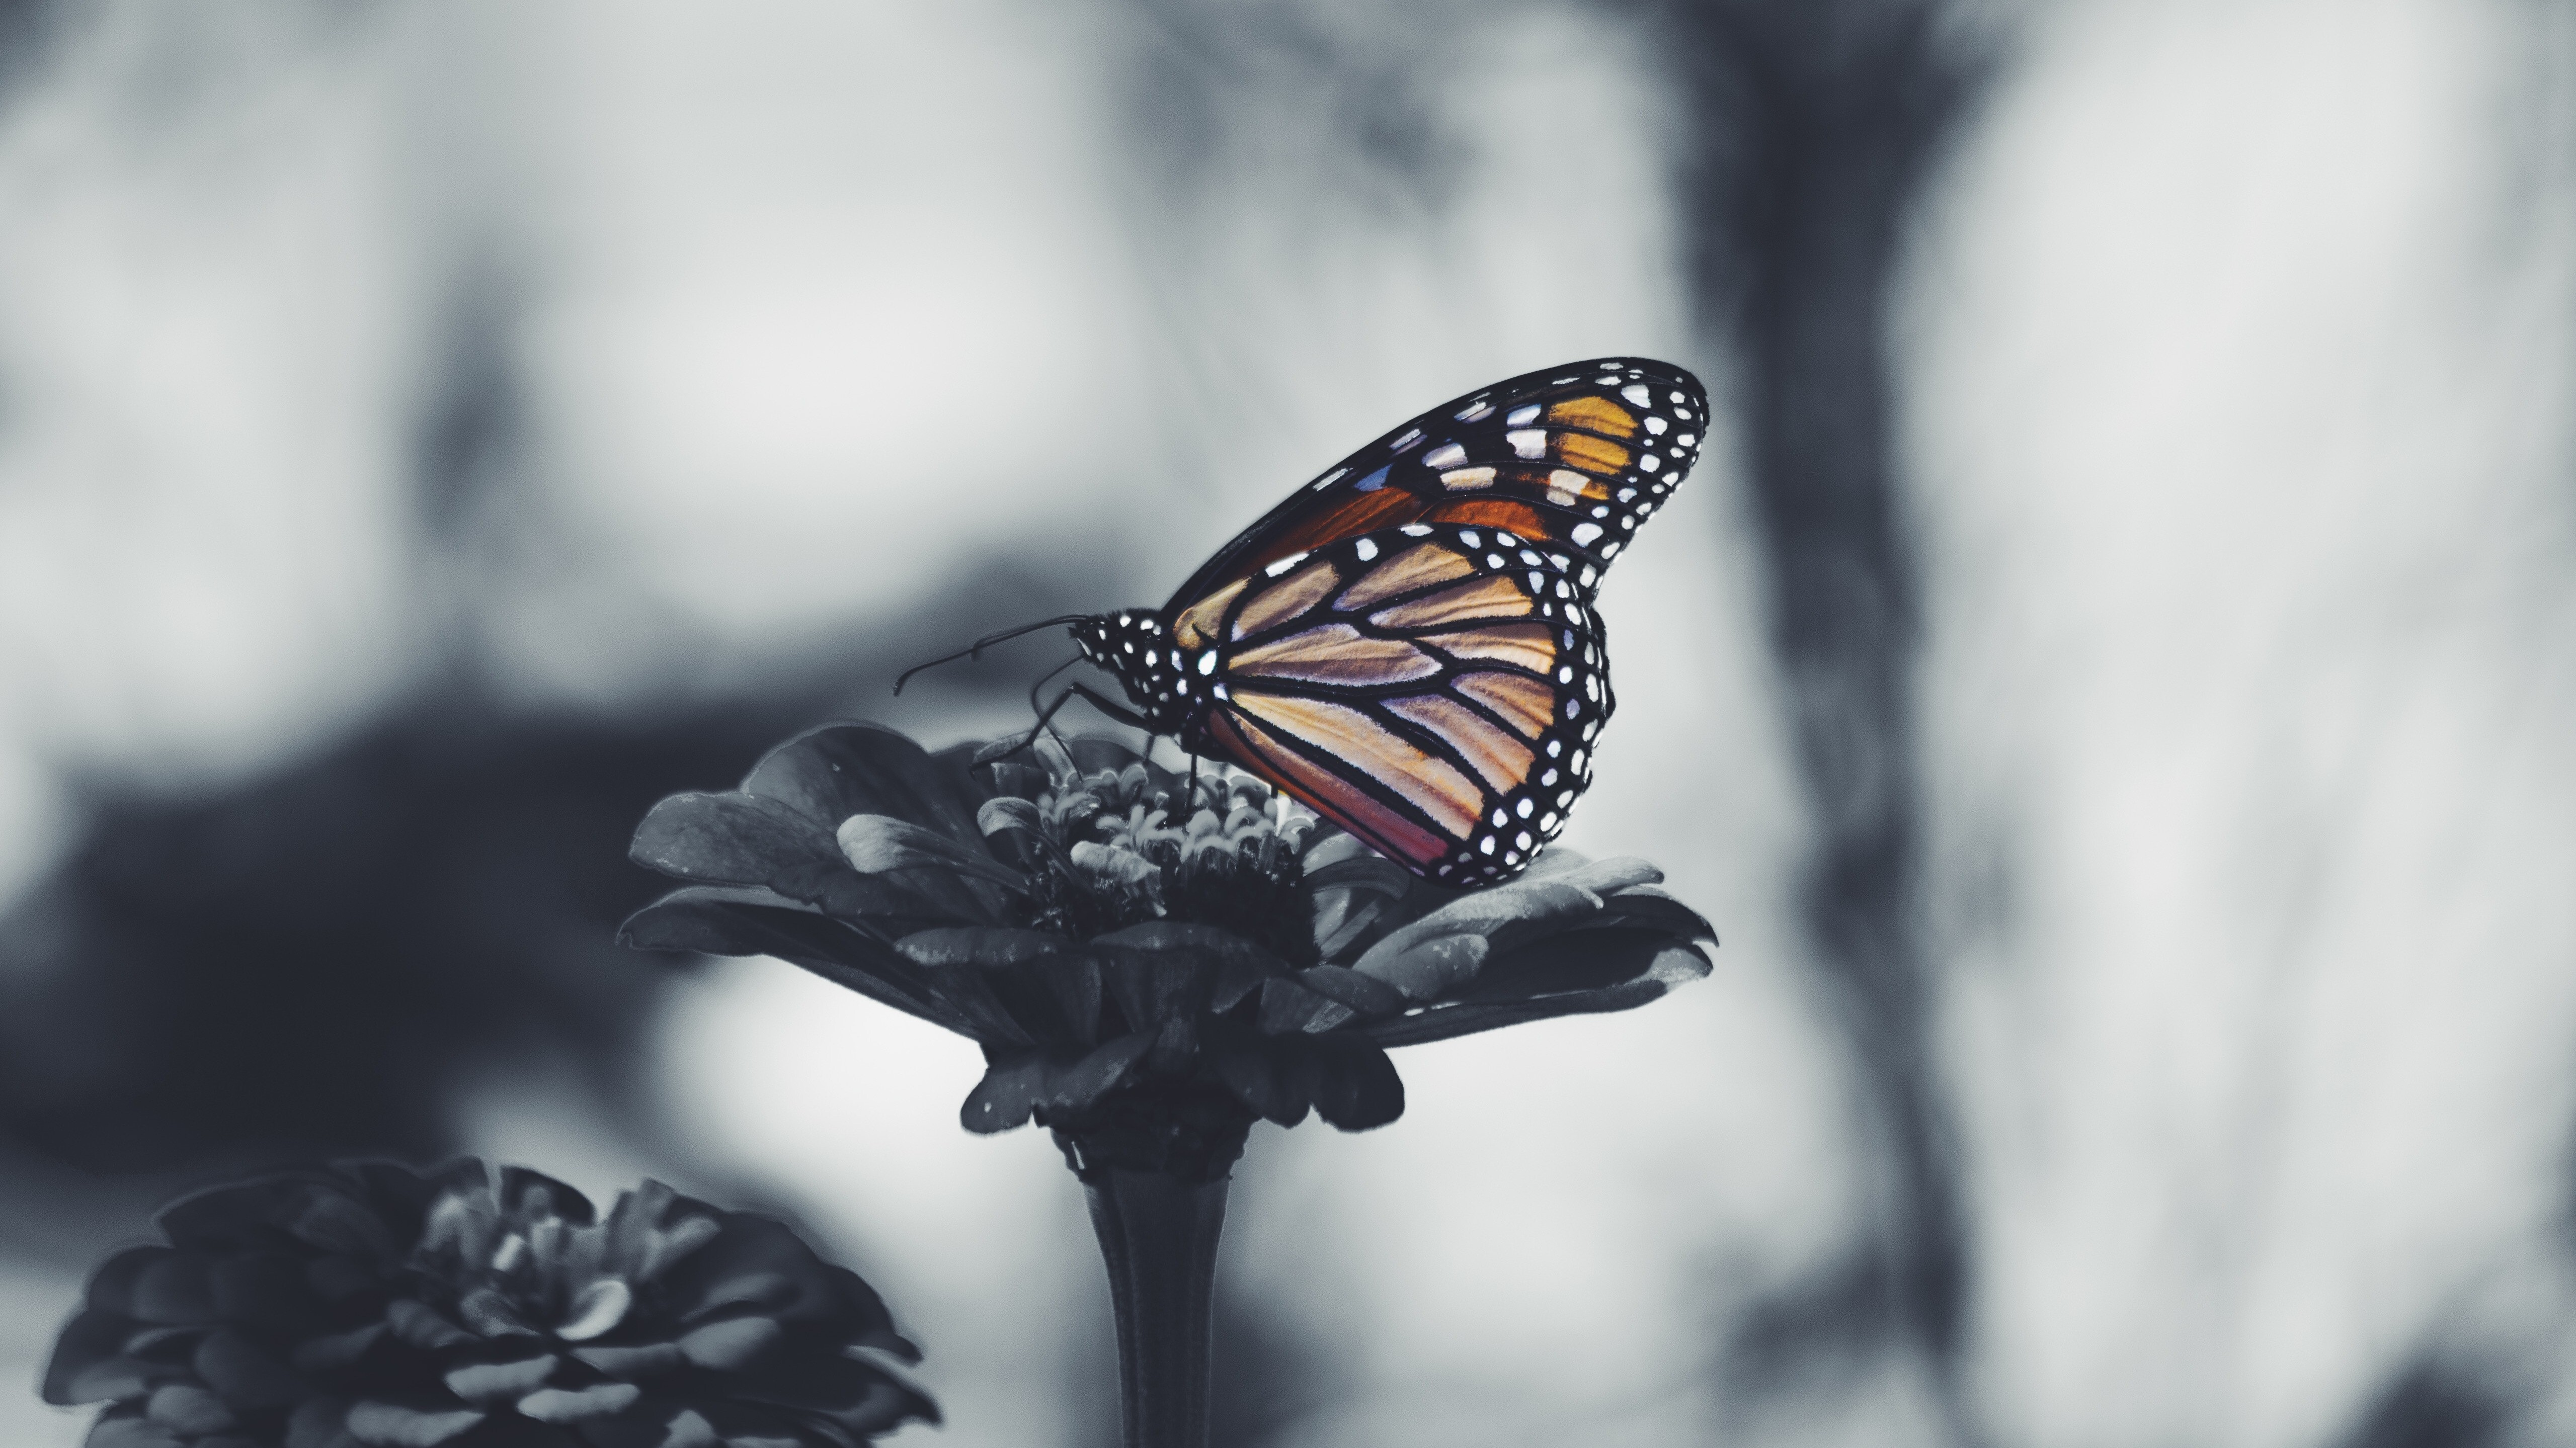 Butterfly 5k Black And White Desktop Background Wallpaper Hd